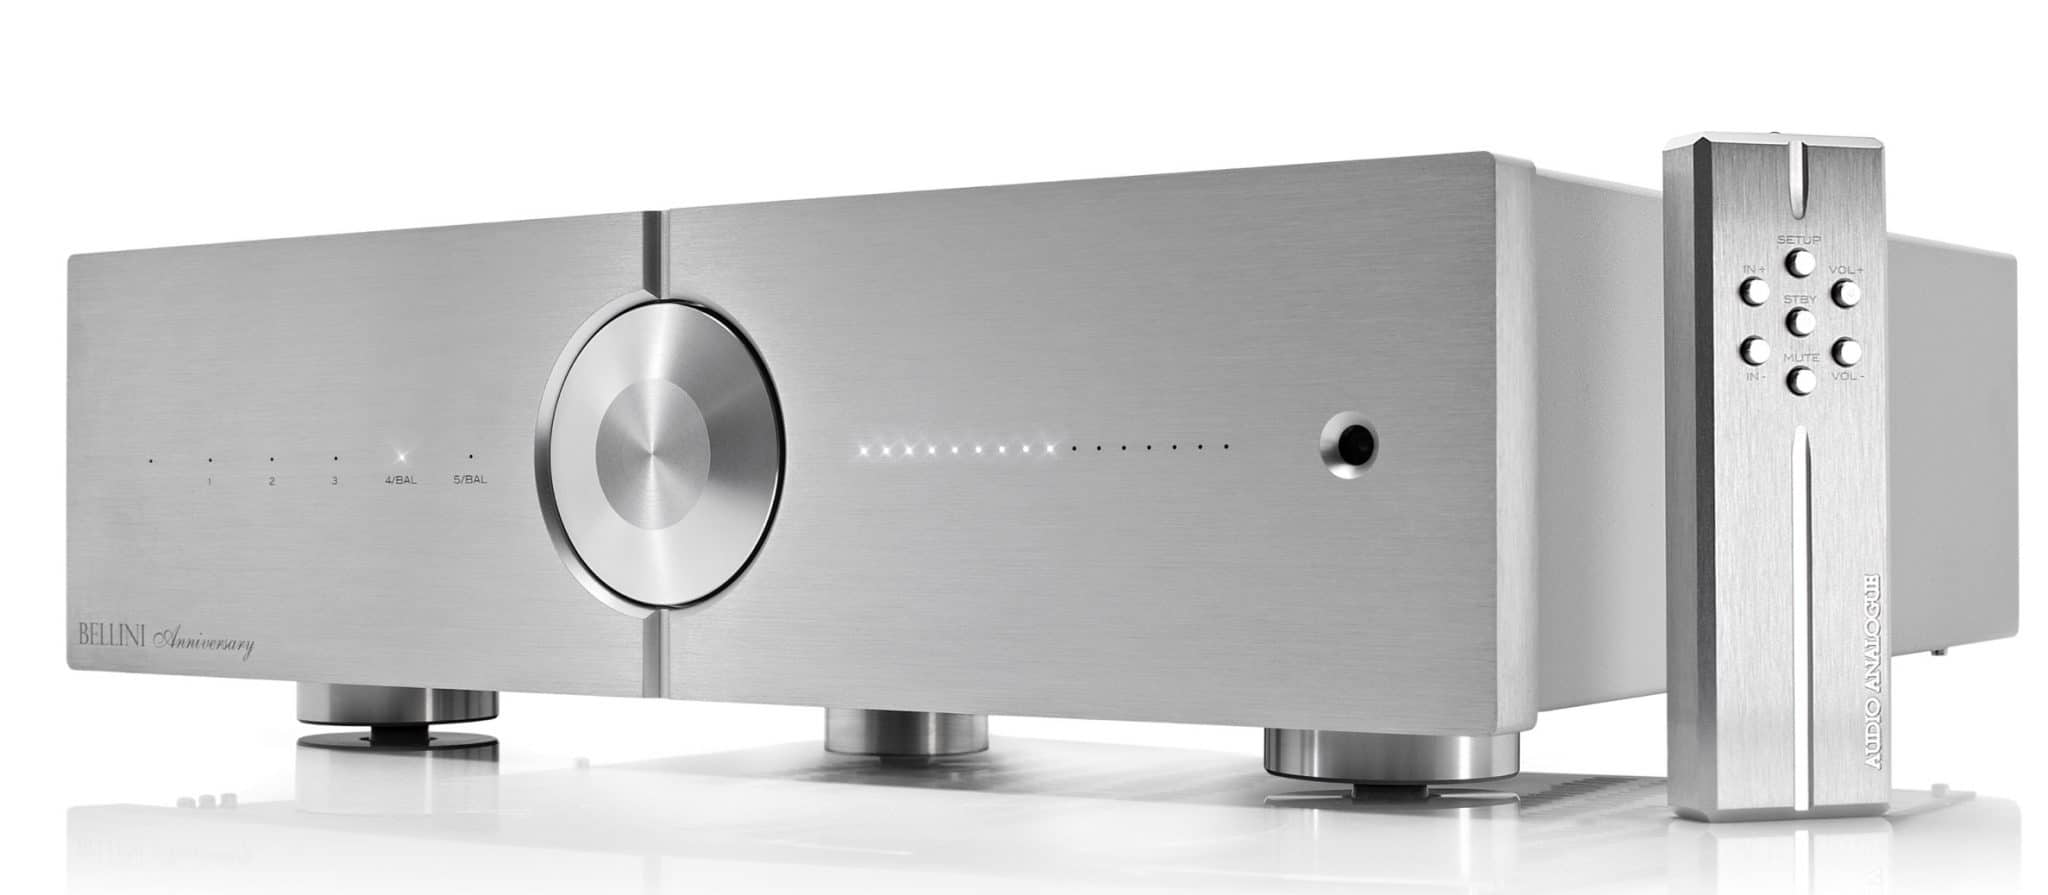 Bellini & Donizetti Amps From Audio Analogue